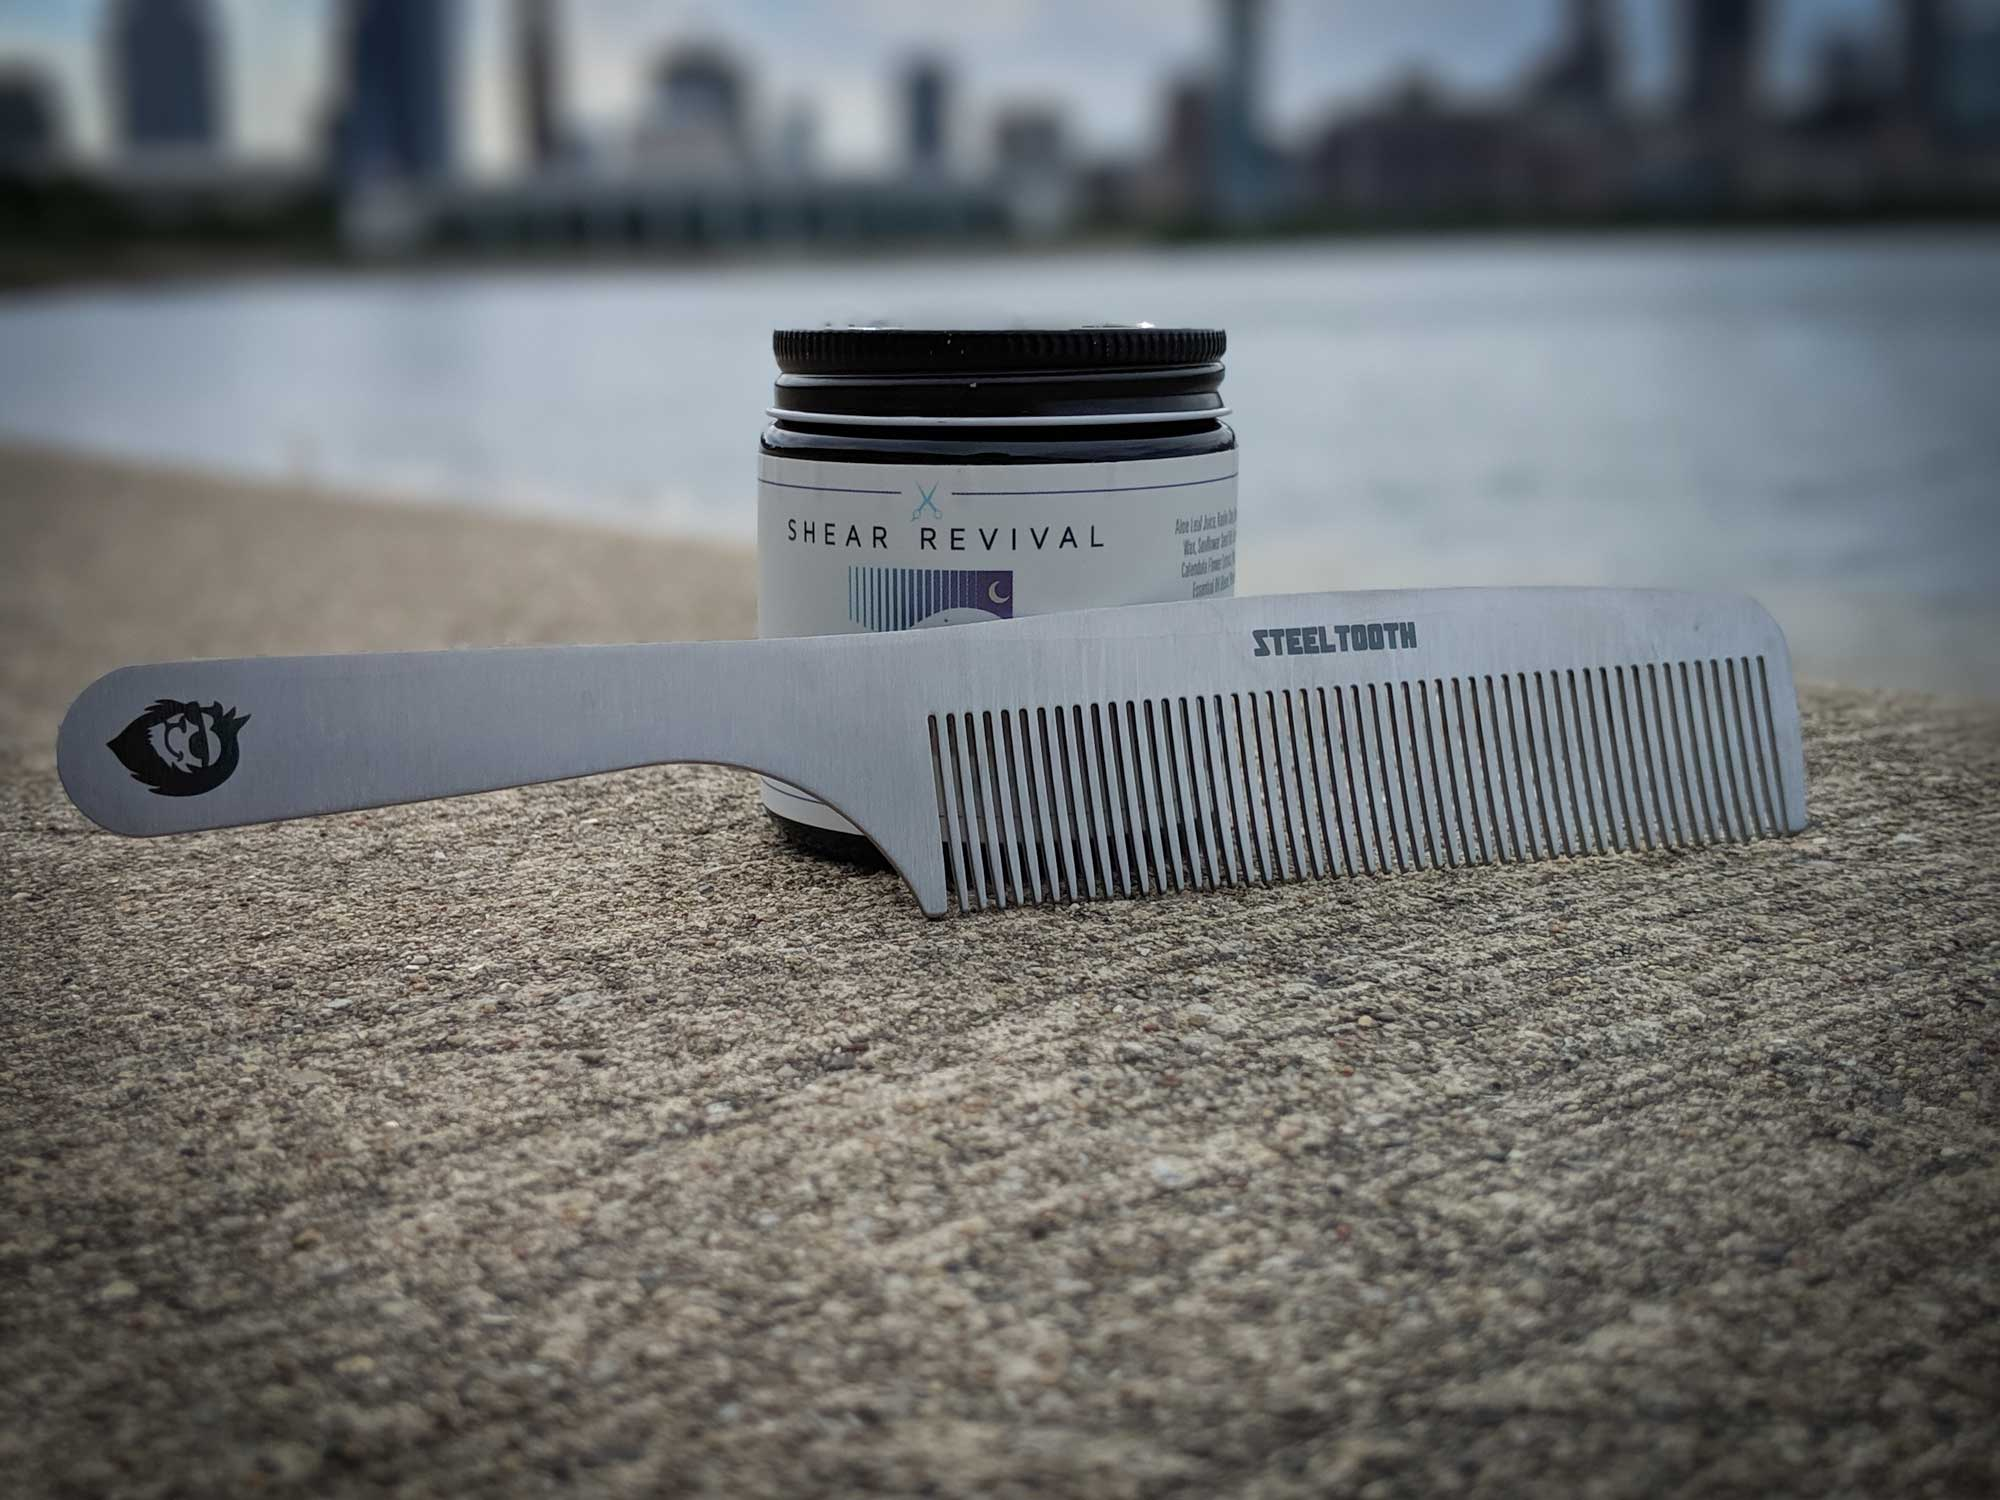 Shear Revival Matte Paste and a steeltooth comb with chicago in the background.